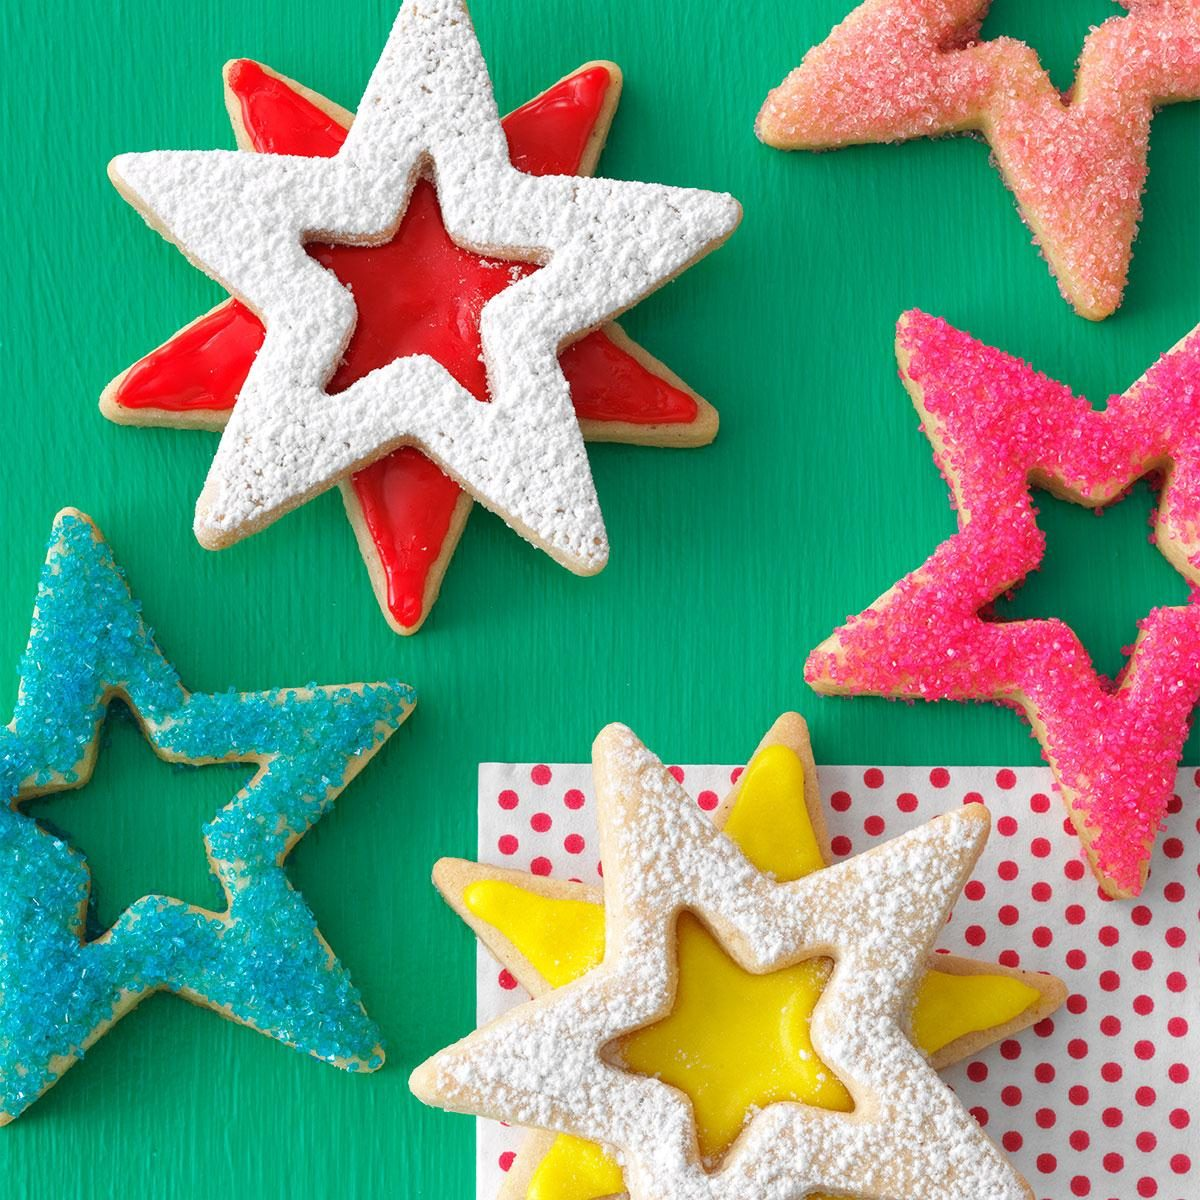 Cutout Christmas Cookies